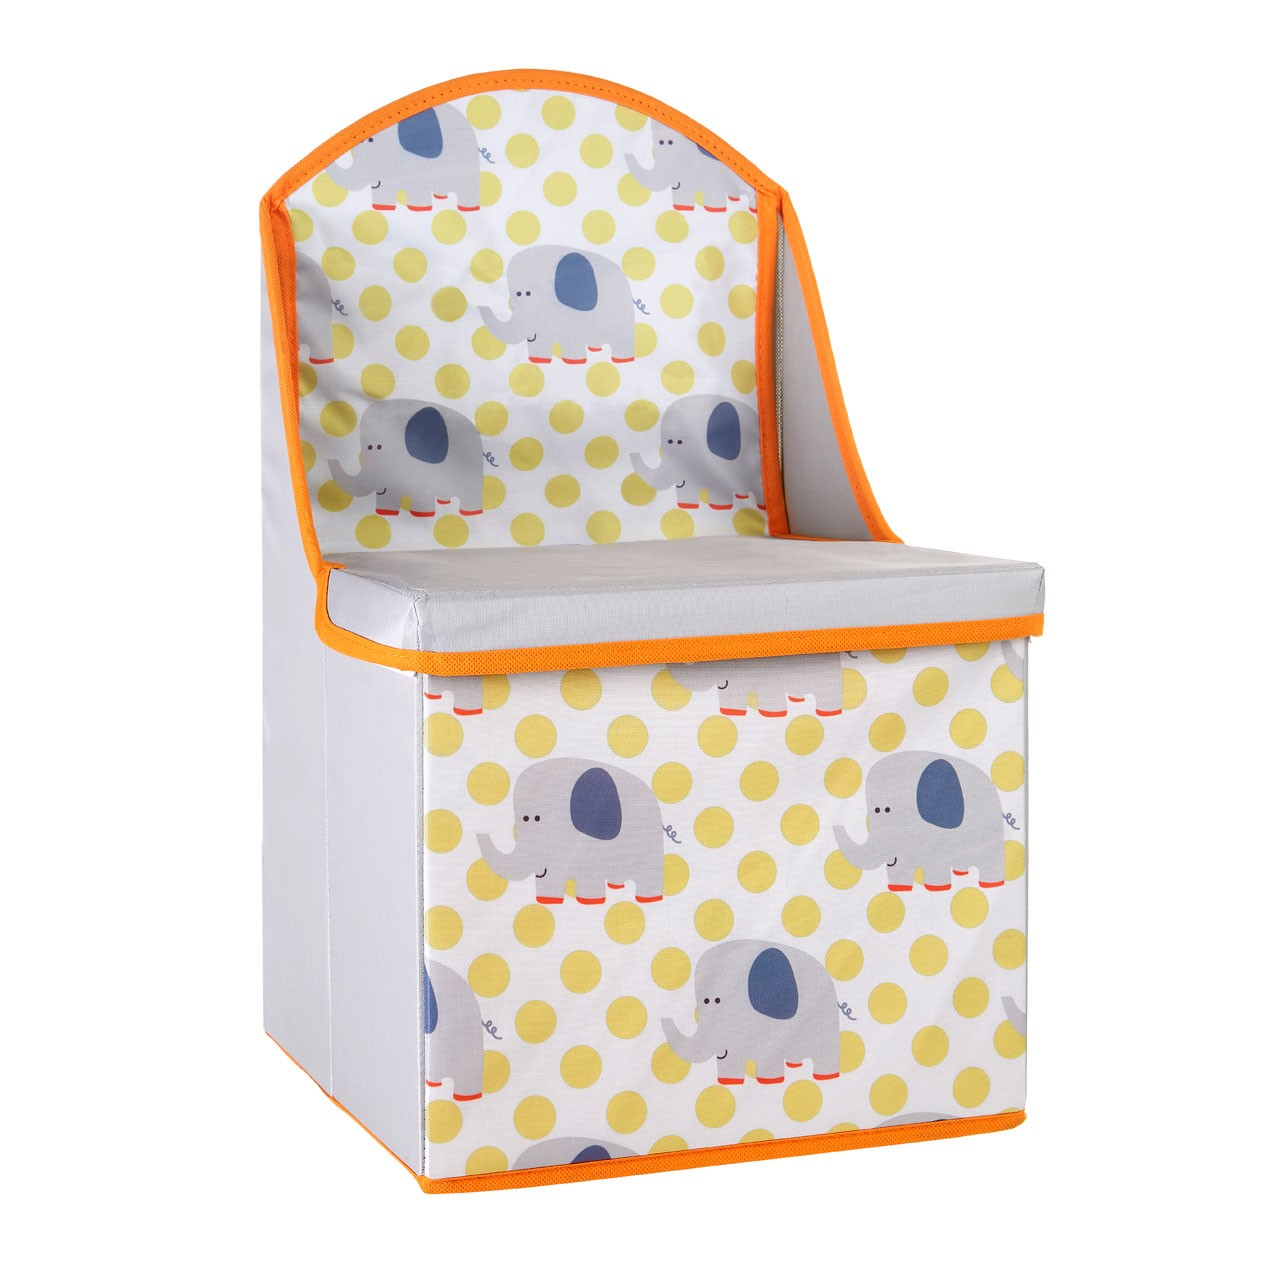 Prime Furnishing Children's Elephant Design Storage Box/Seat